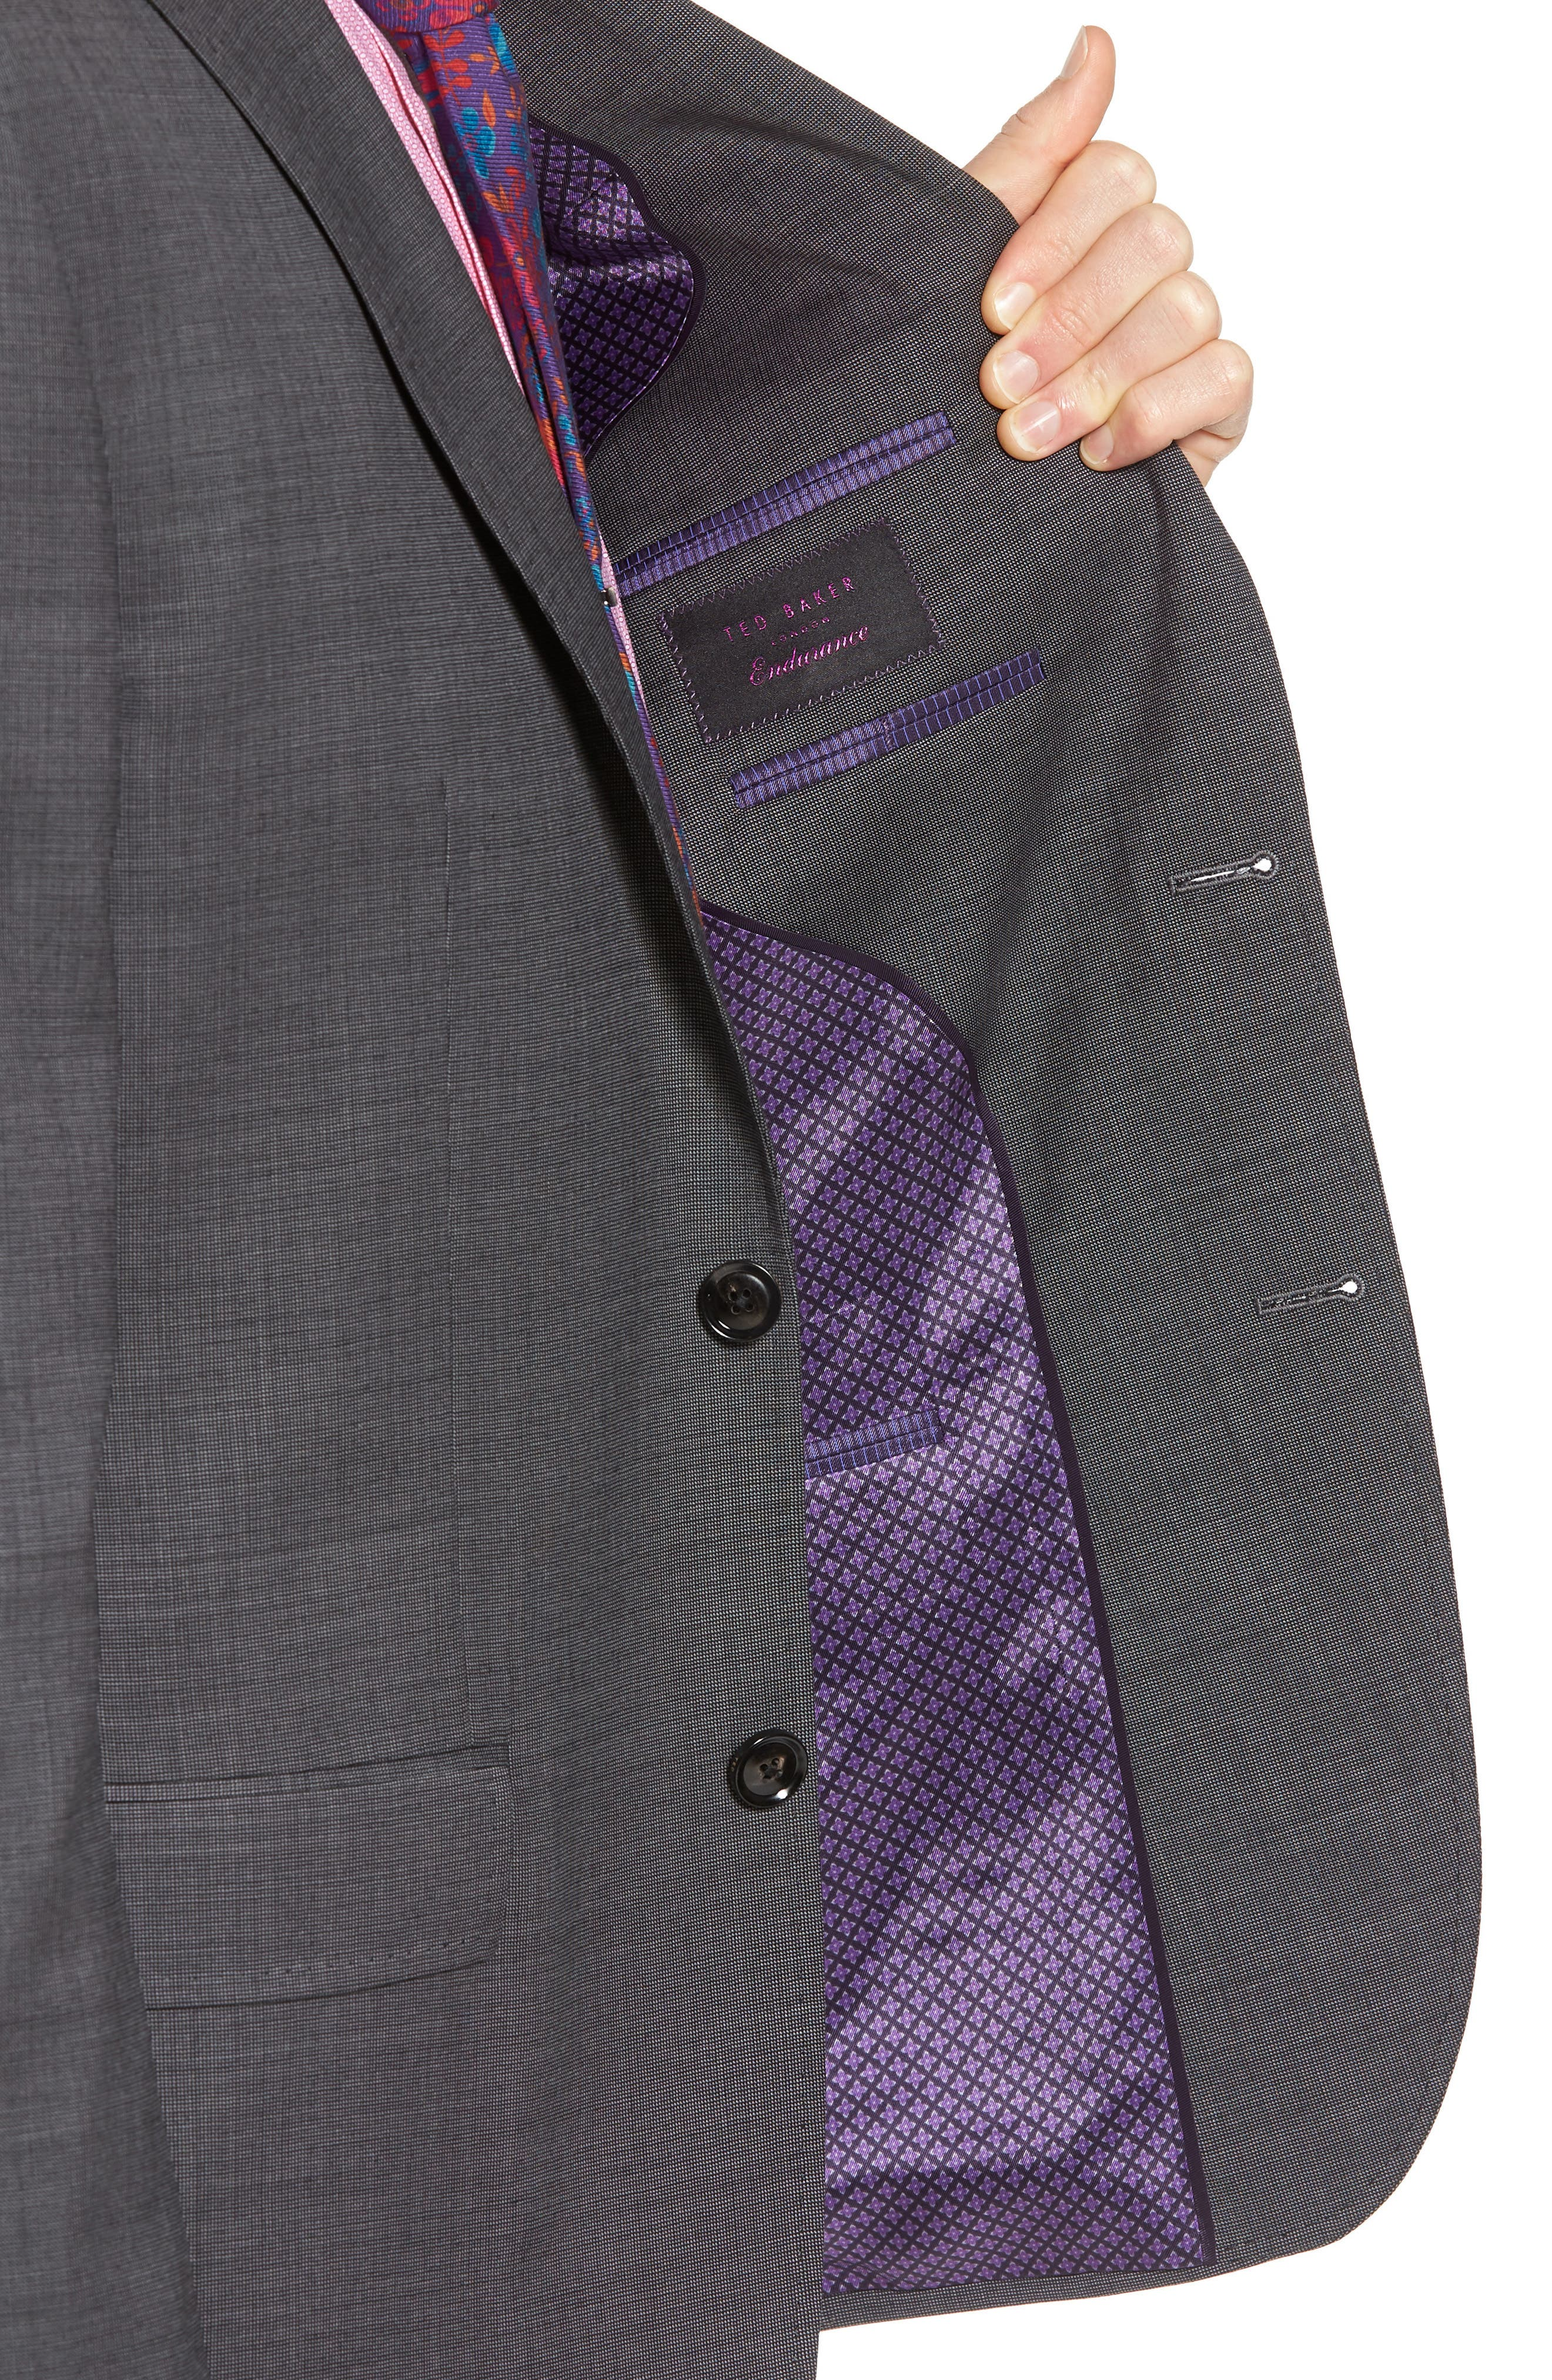 Jay Trim Fit Solid Wool Suit,                             Alternate thumbnail 4, color,                             Grey